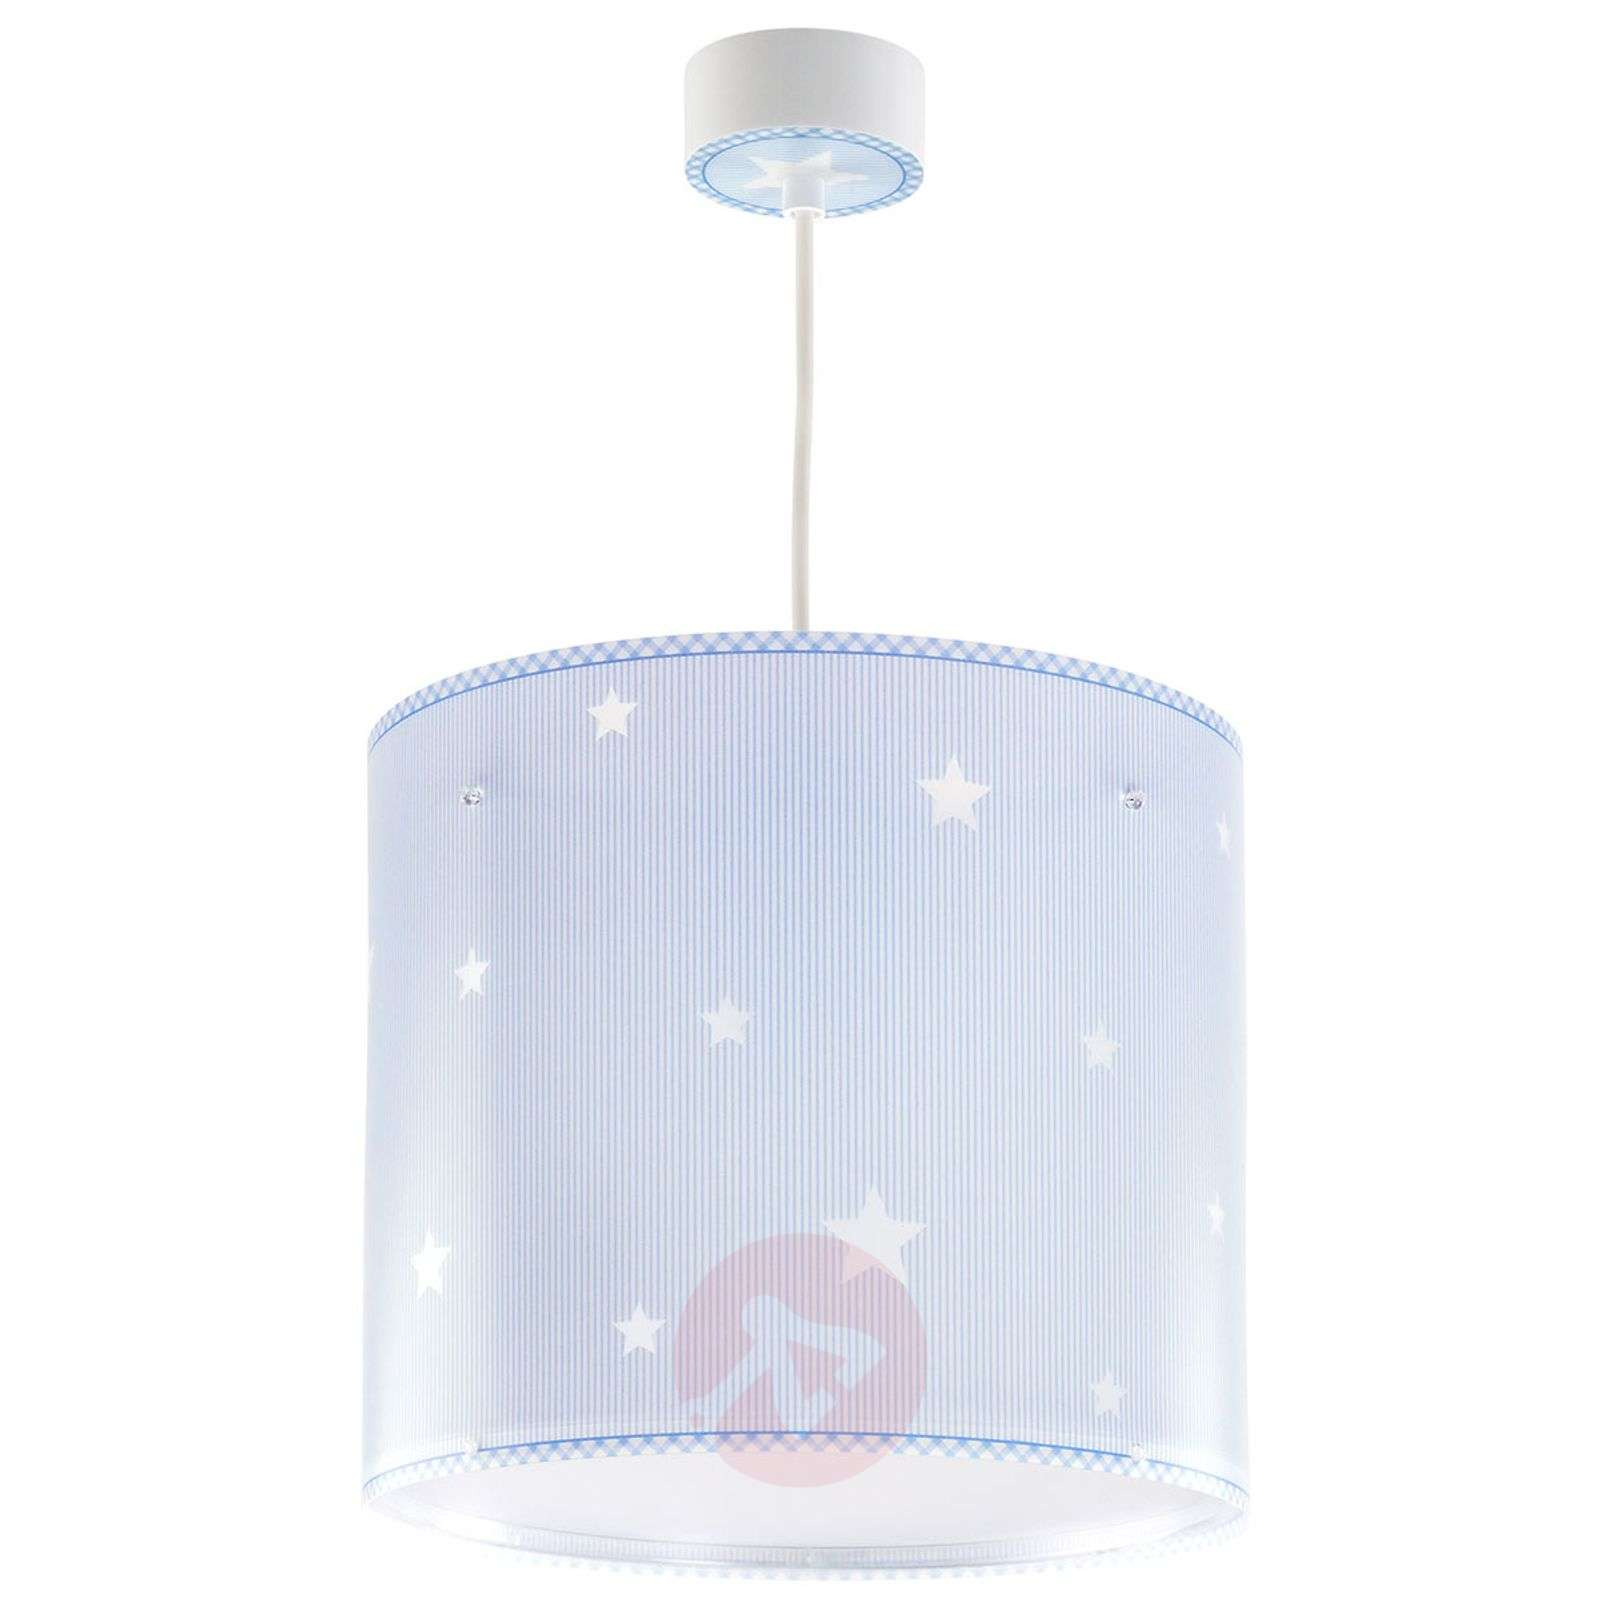 Suspension bleue Sweet dreams-2507420-01